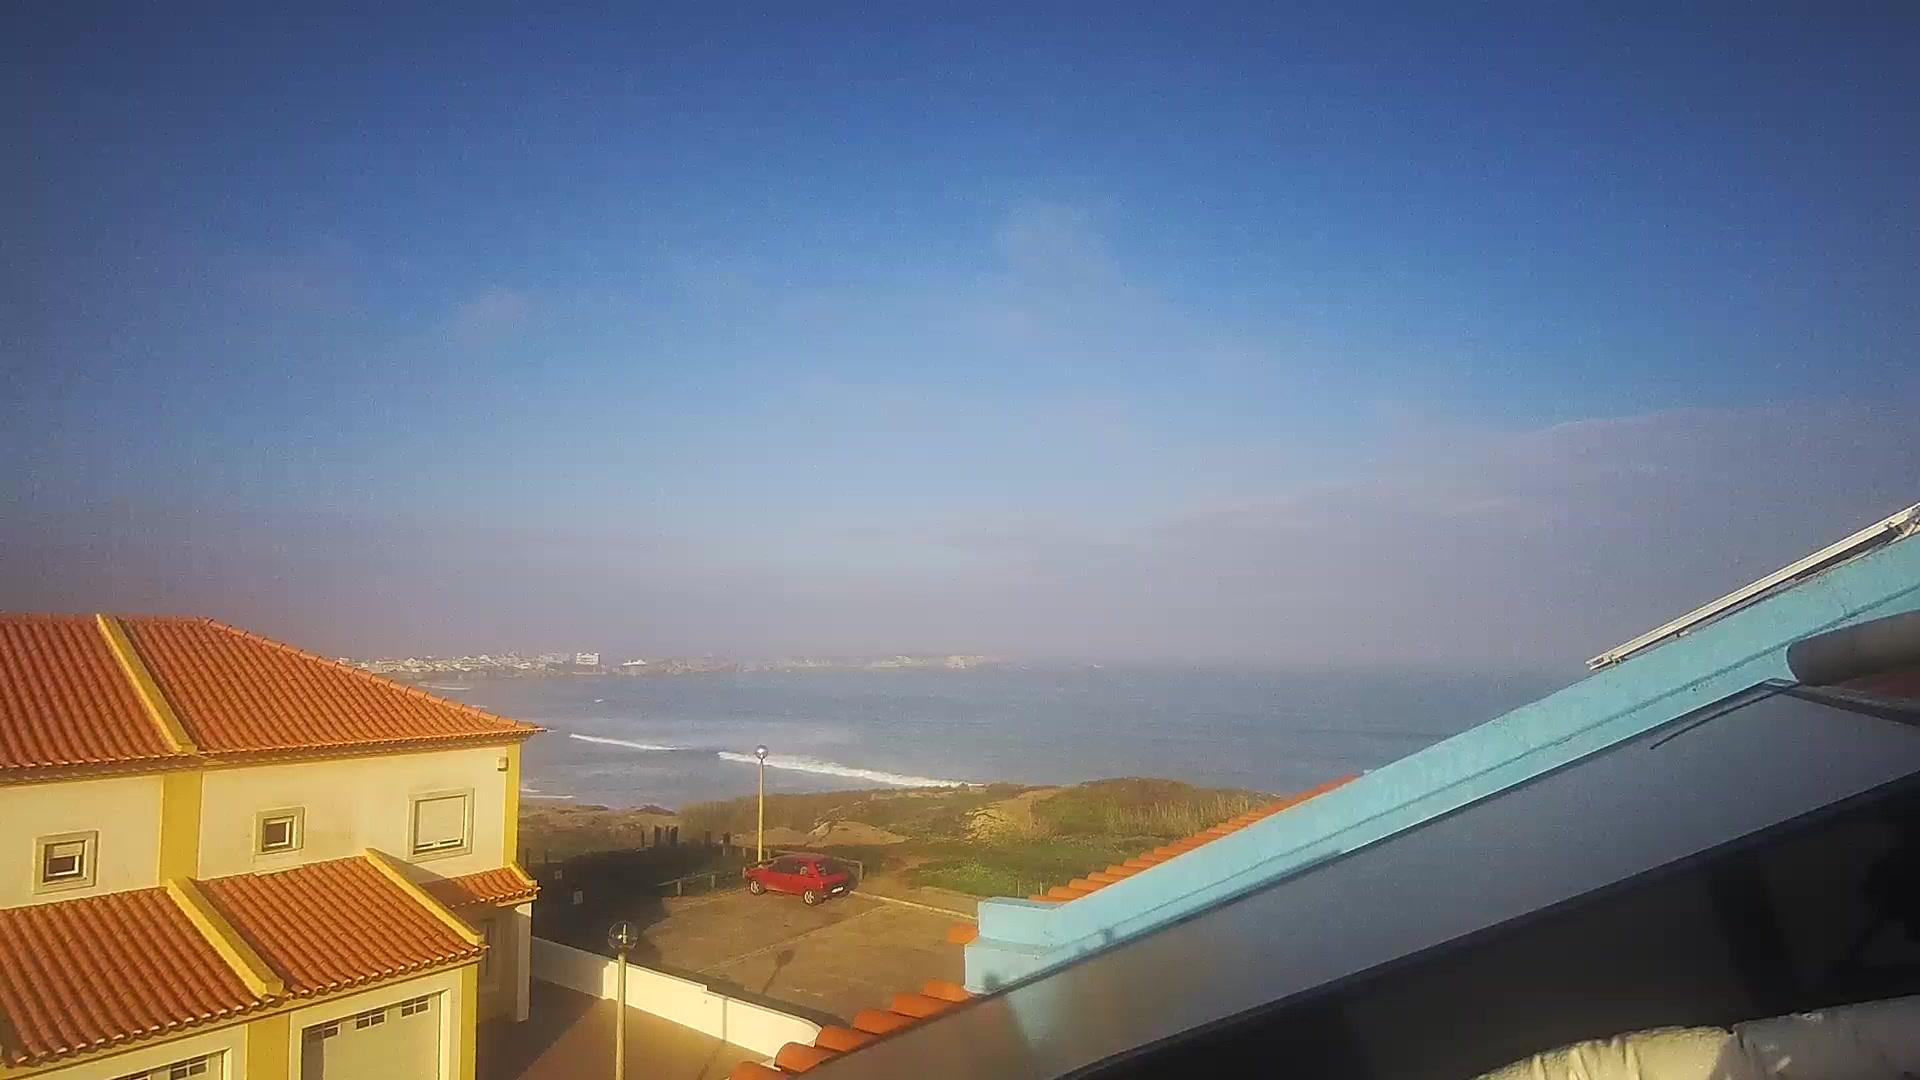 Webcam Baleal › West: Peniche Surf Camp